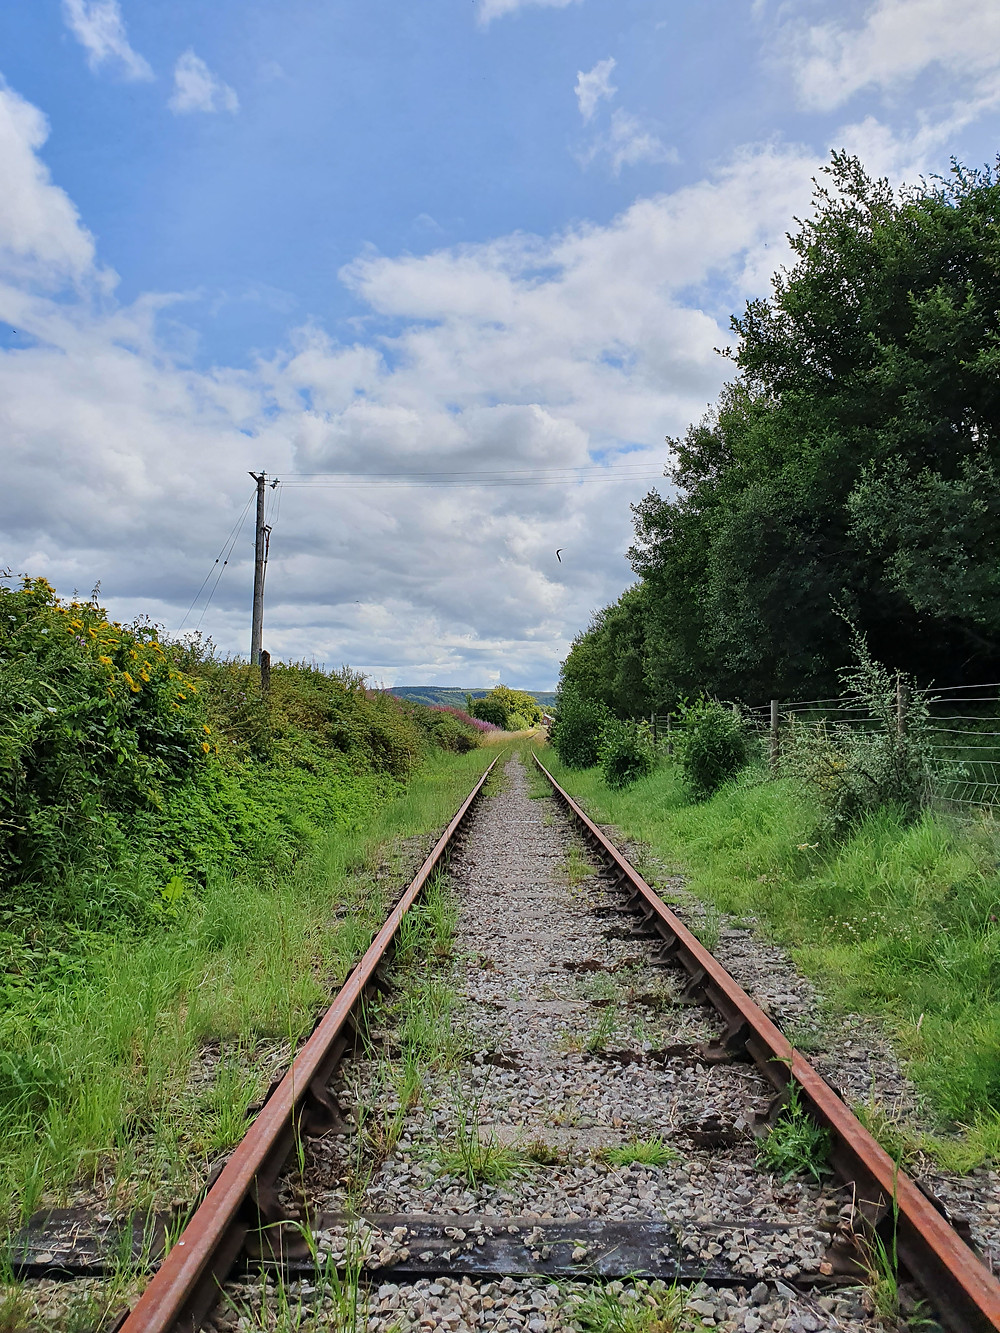 Rusty, overgrown track at Glantorfaen Crossing in late July 2020